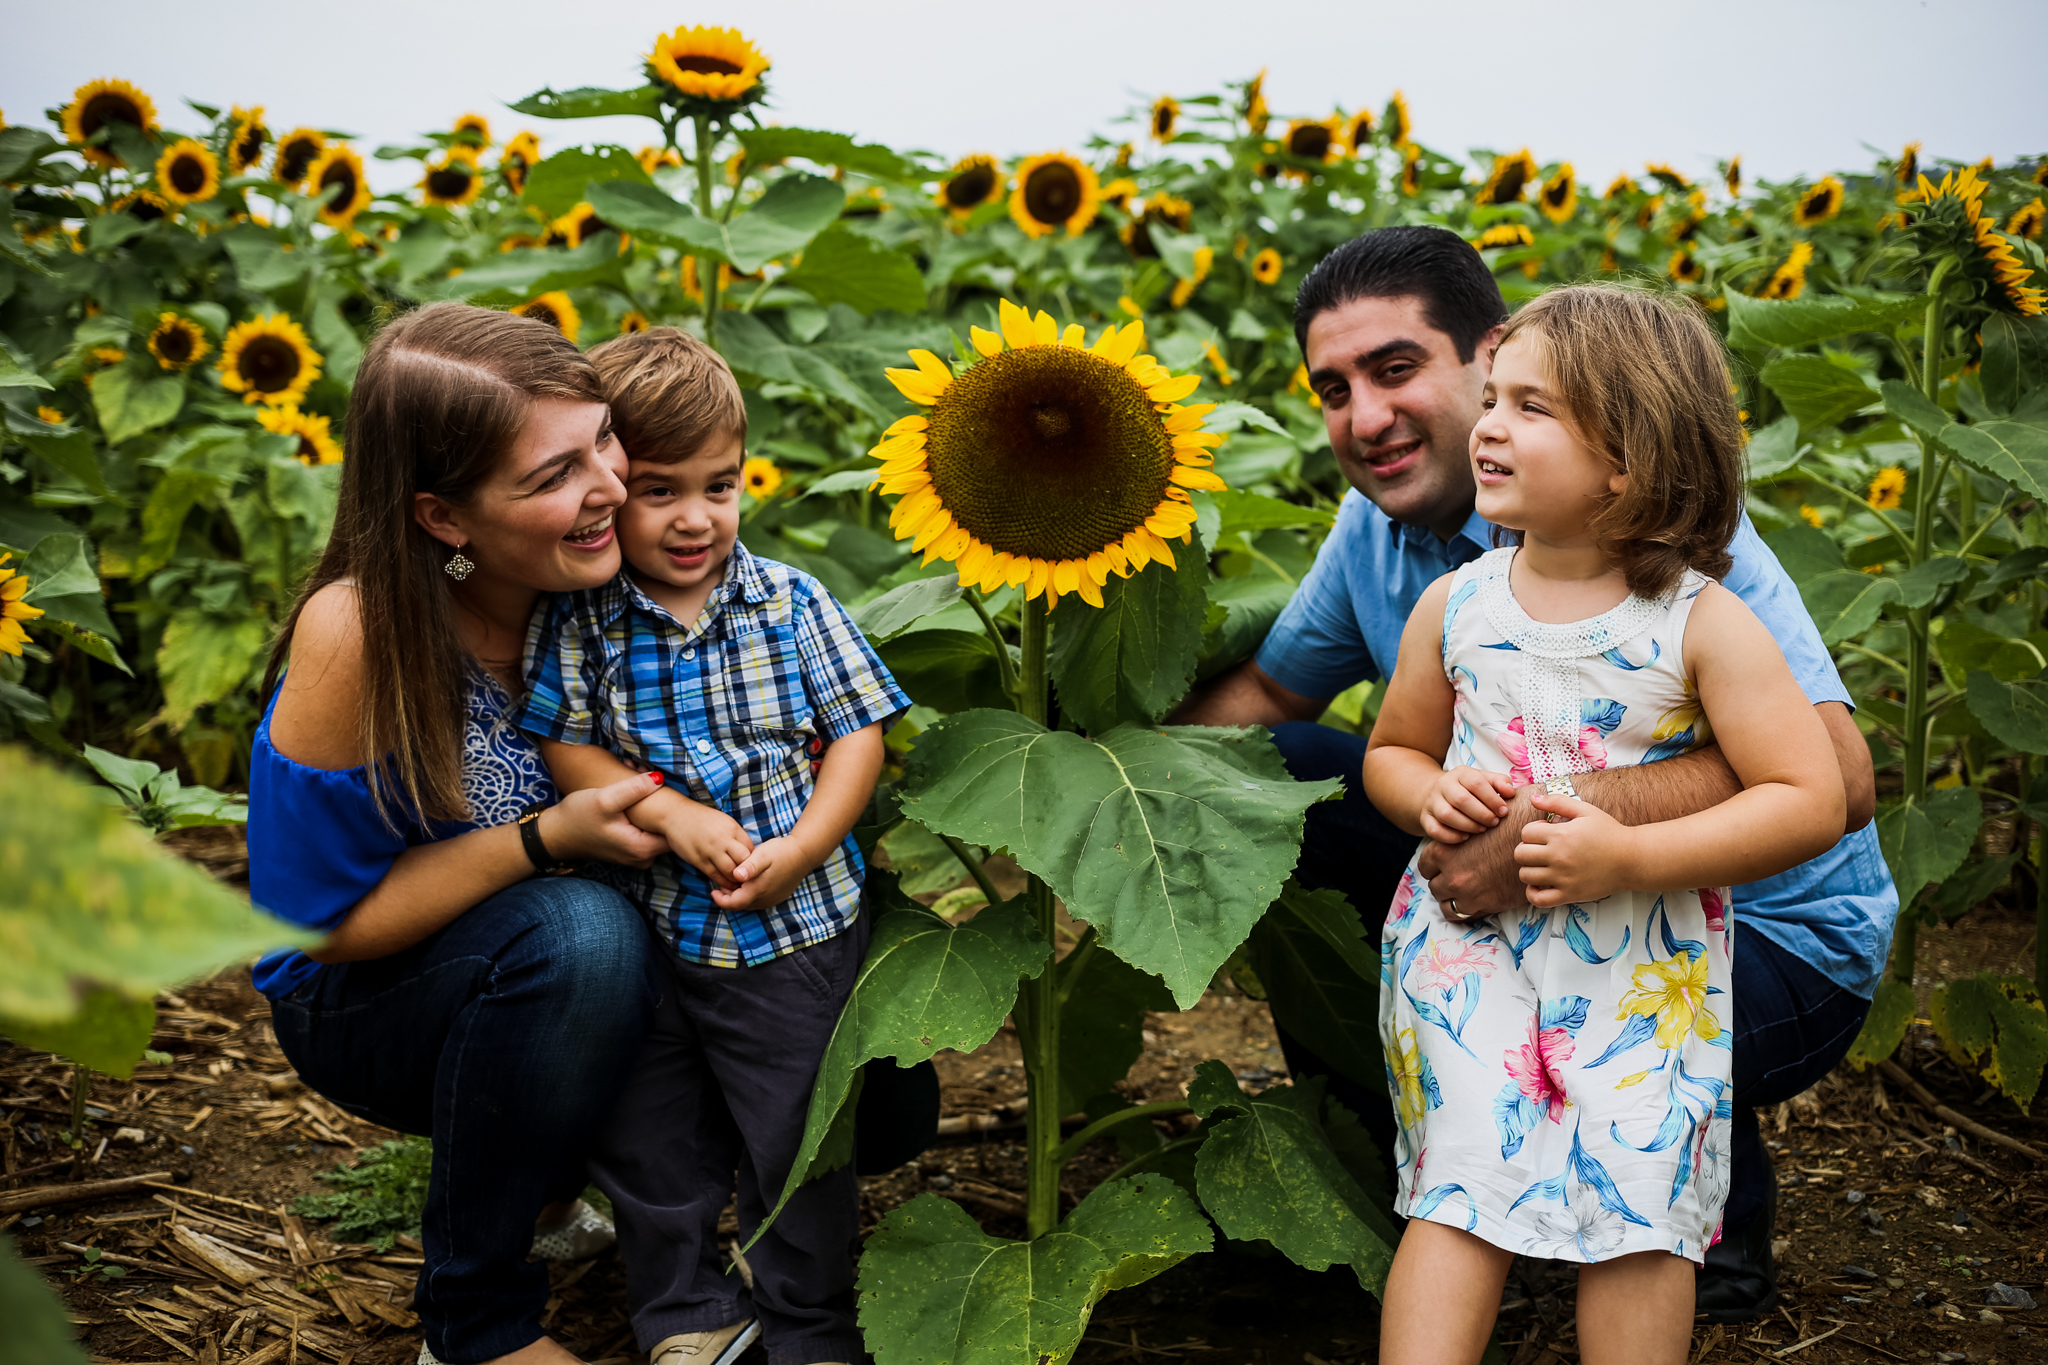 Family photography at the sunflower experience at Grim's Orchard in Breinigsville, PA.